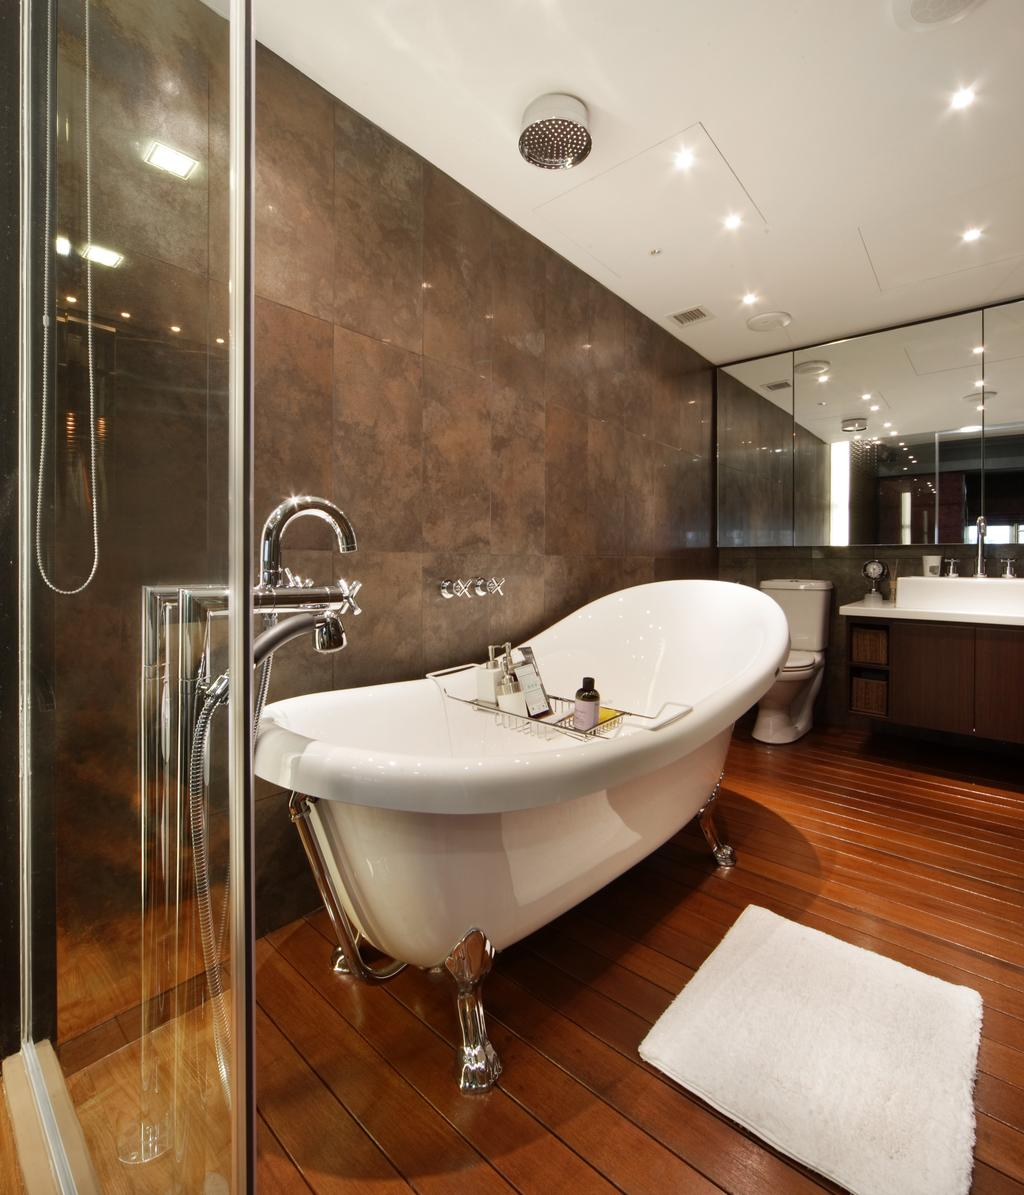 Modern, Landed, Bathroom, The Shaughnessy, Interior Designer, Vegas Interior Design, Contemporary, Glass Bathroom, Vintage Bathtub, Marble Wall, Wooden Flooring, Ceiling Showerhead, Downlights, Built In Mirror, Sink, Indoors, Interior Design, Room